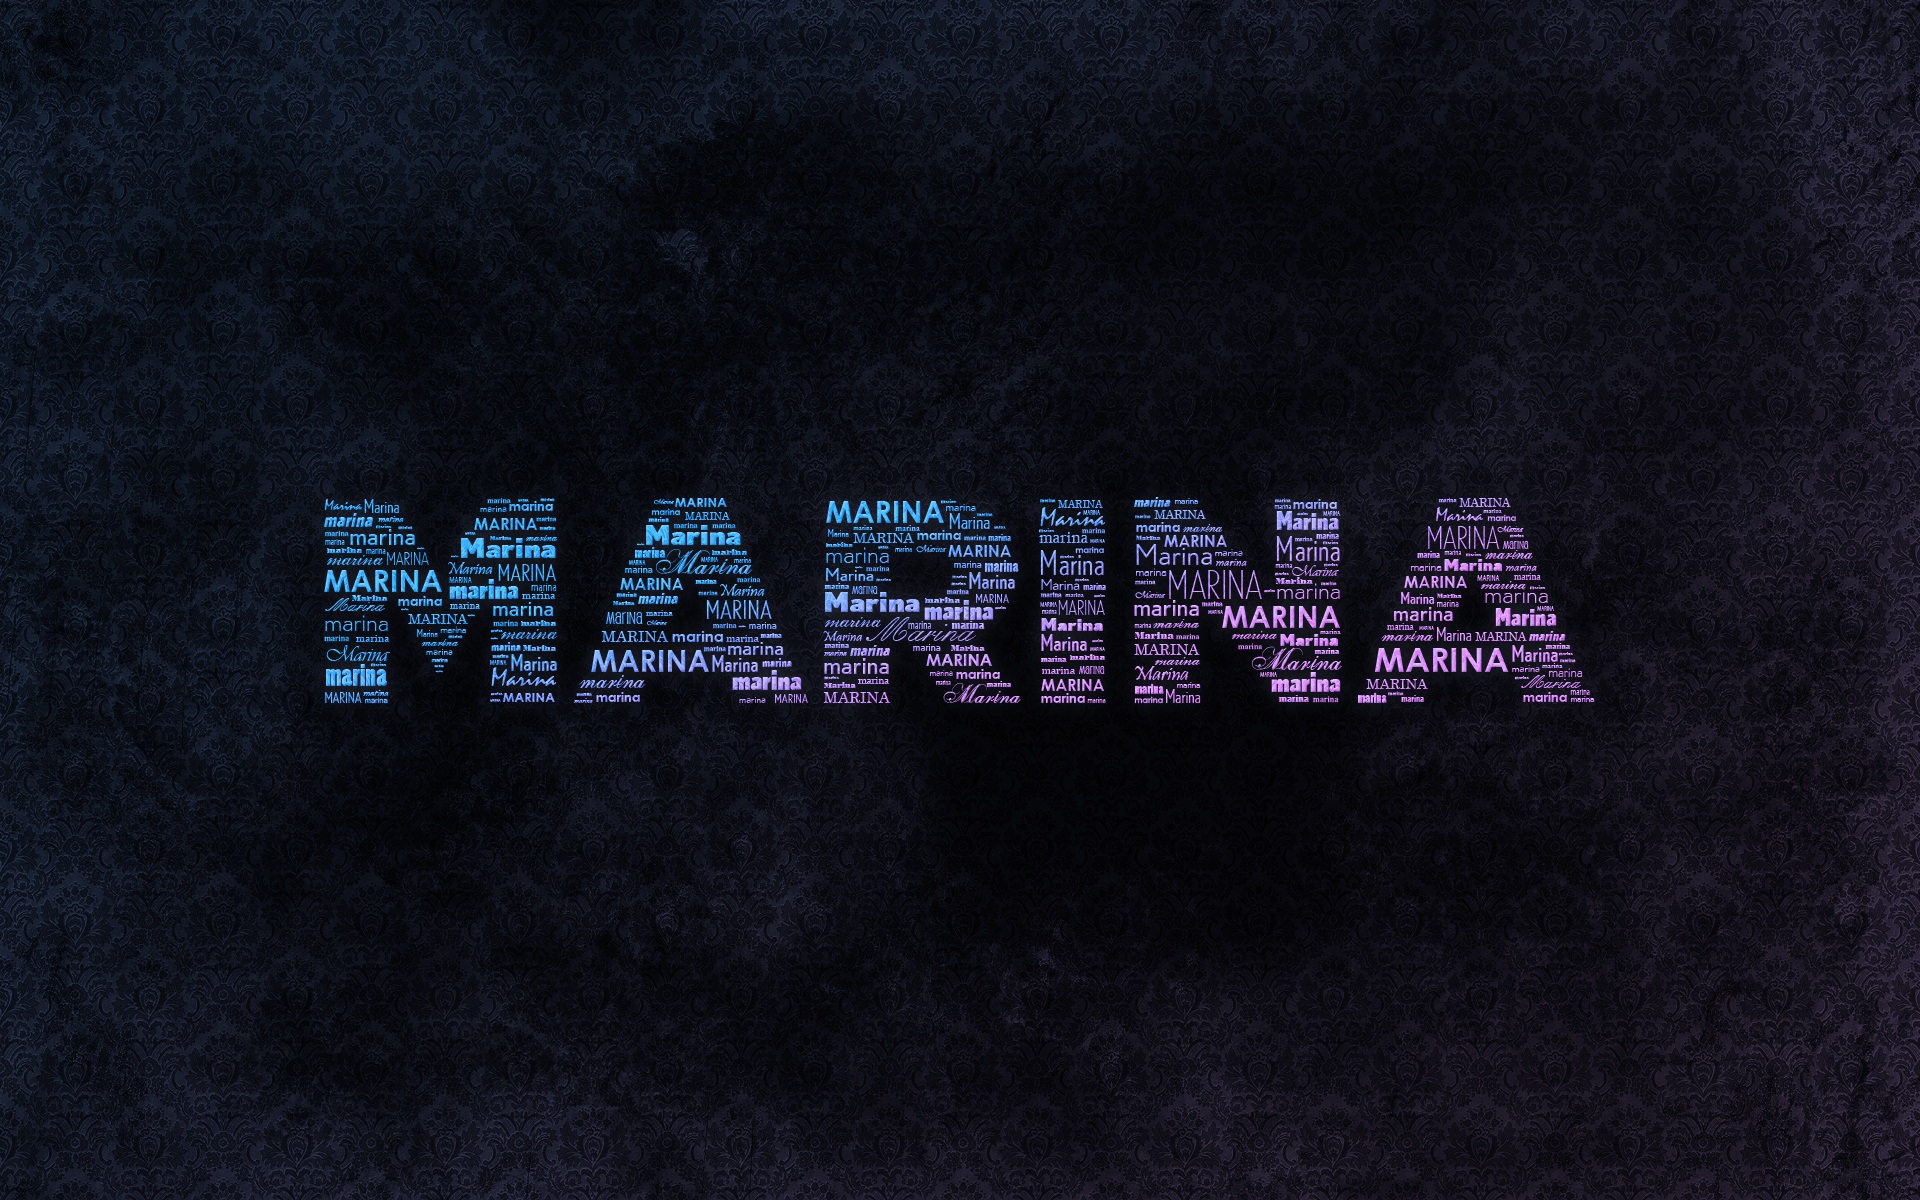 Marina's Wallpapers // Graphic Design